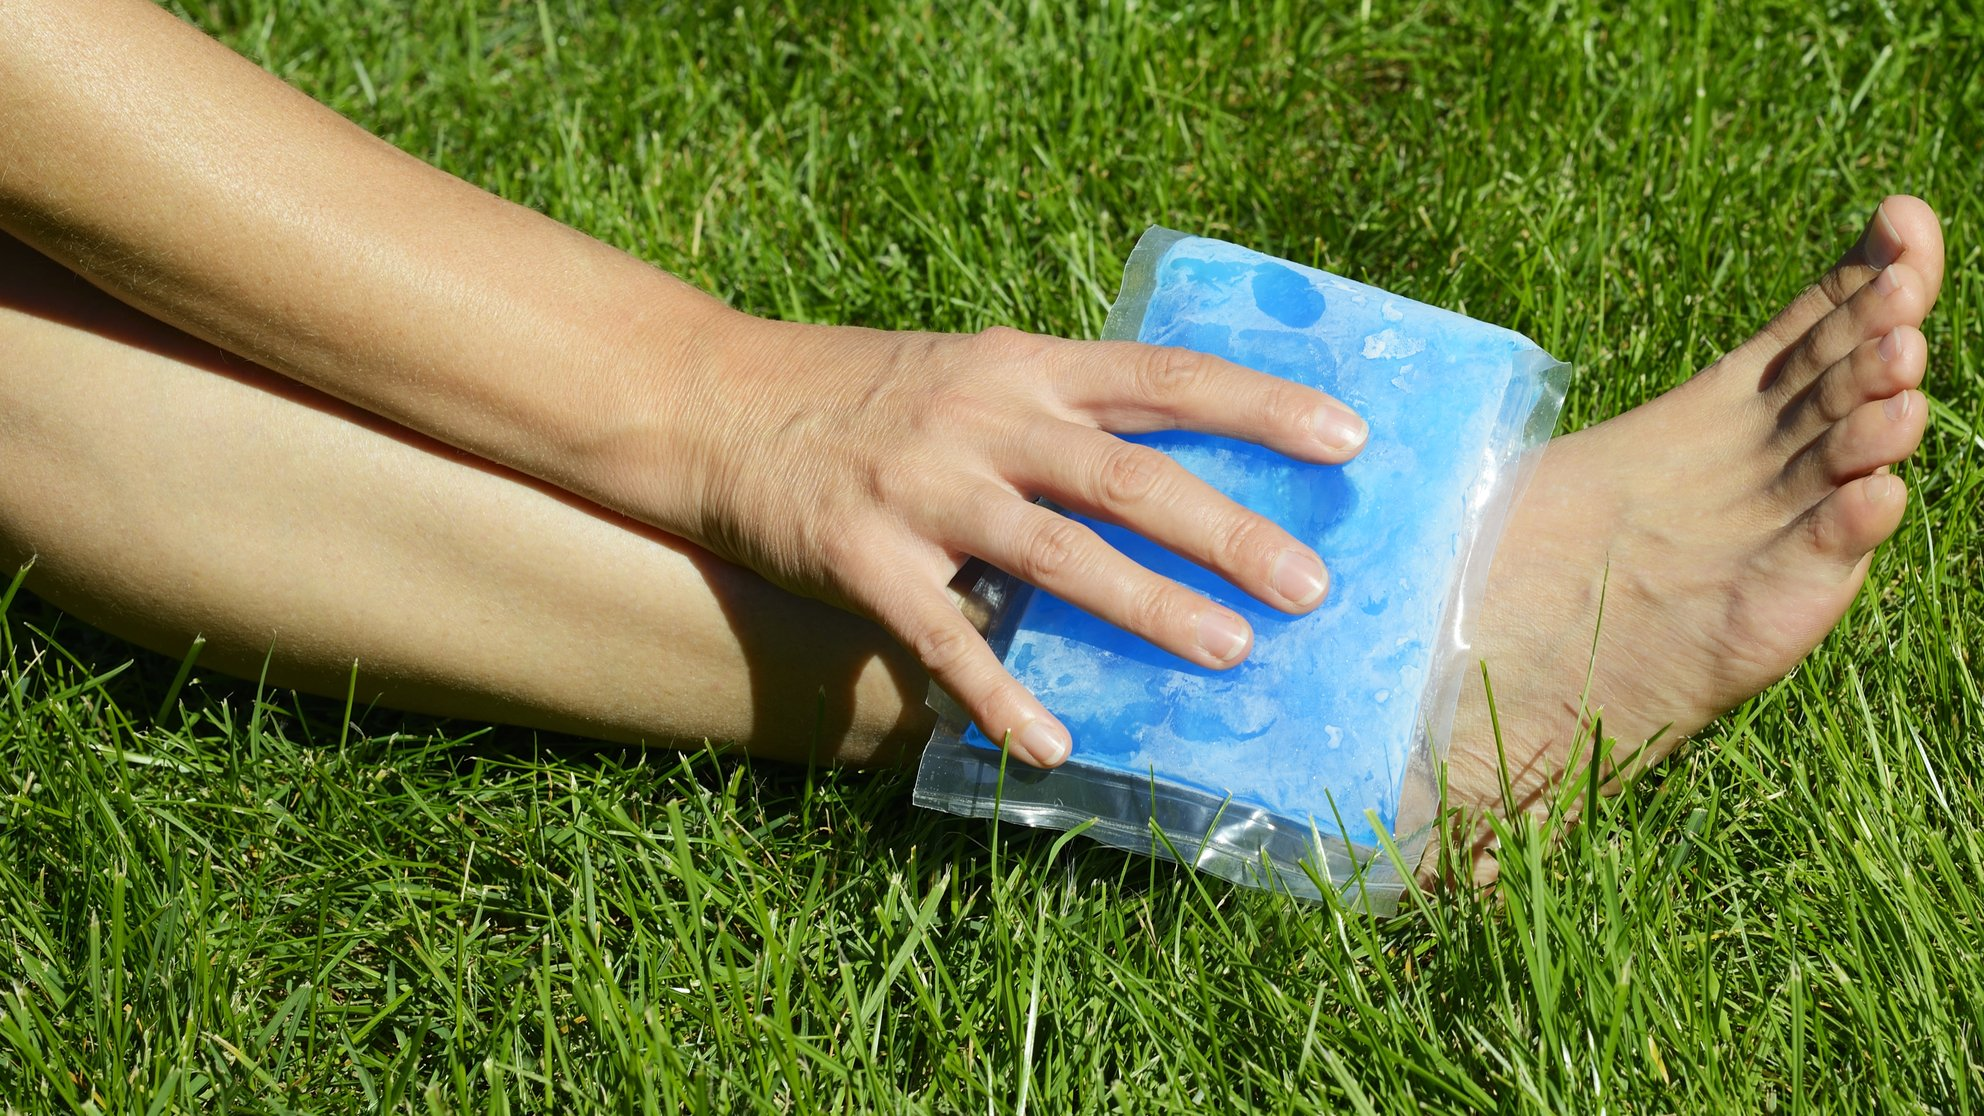 ankle-ice-pack